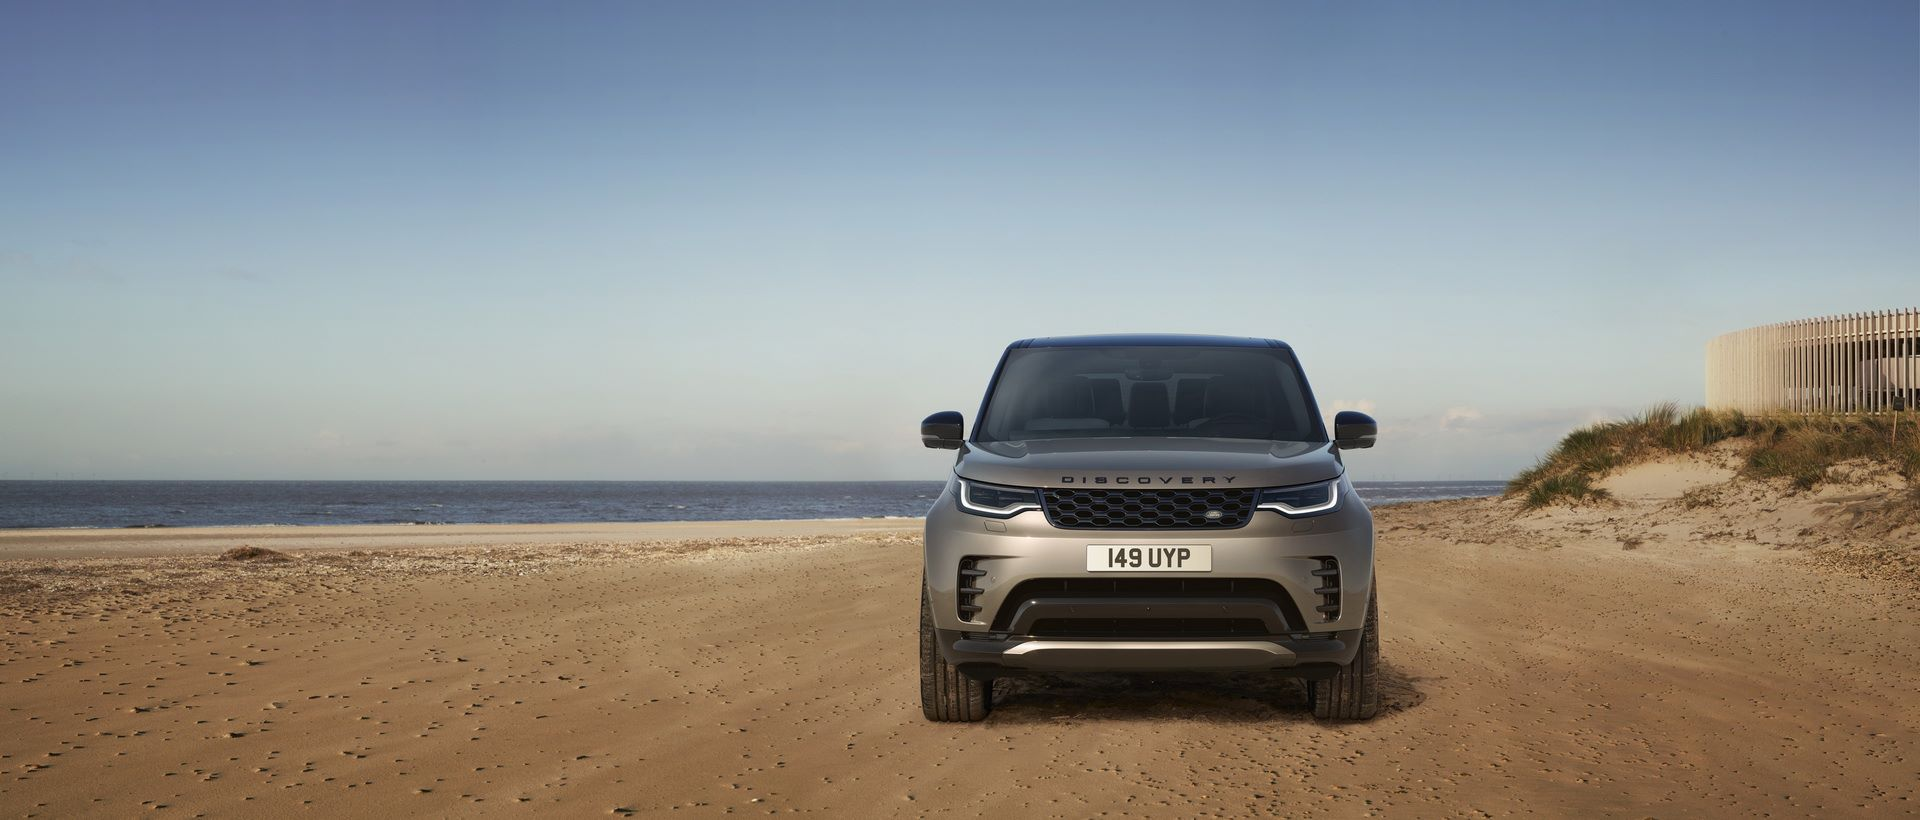 2021-Land-Rover-Discovery-67-1